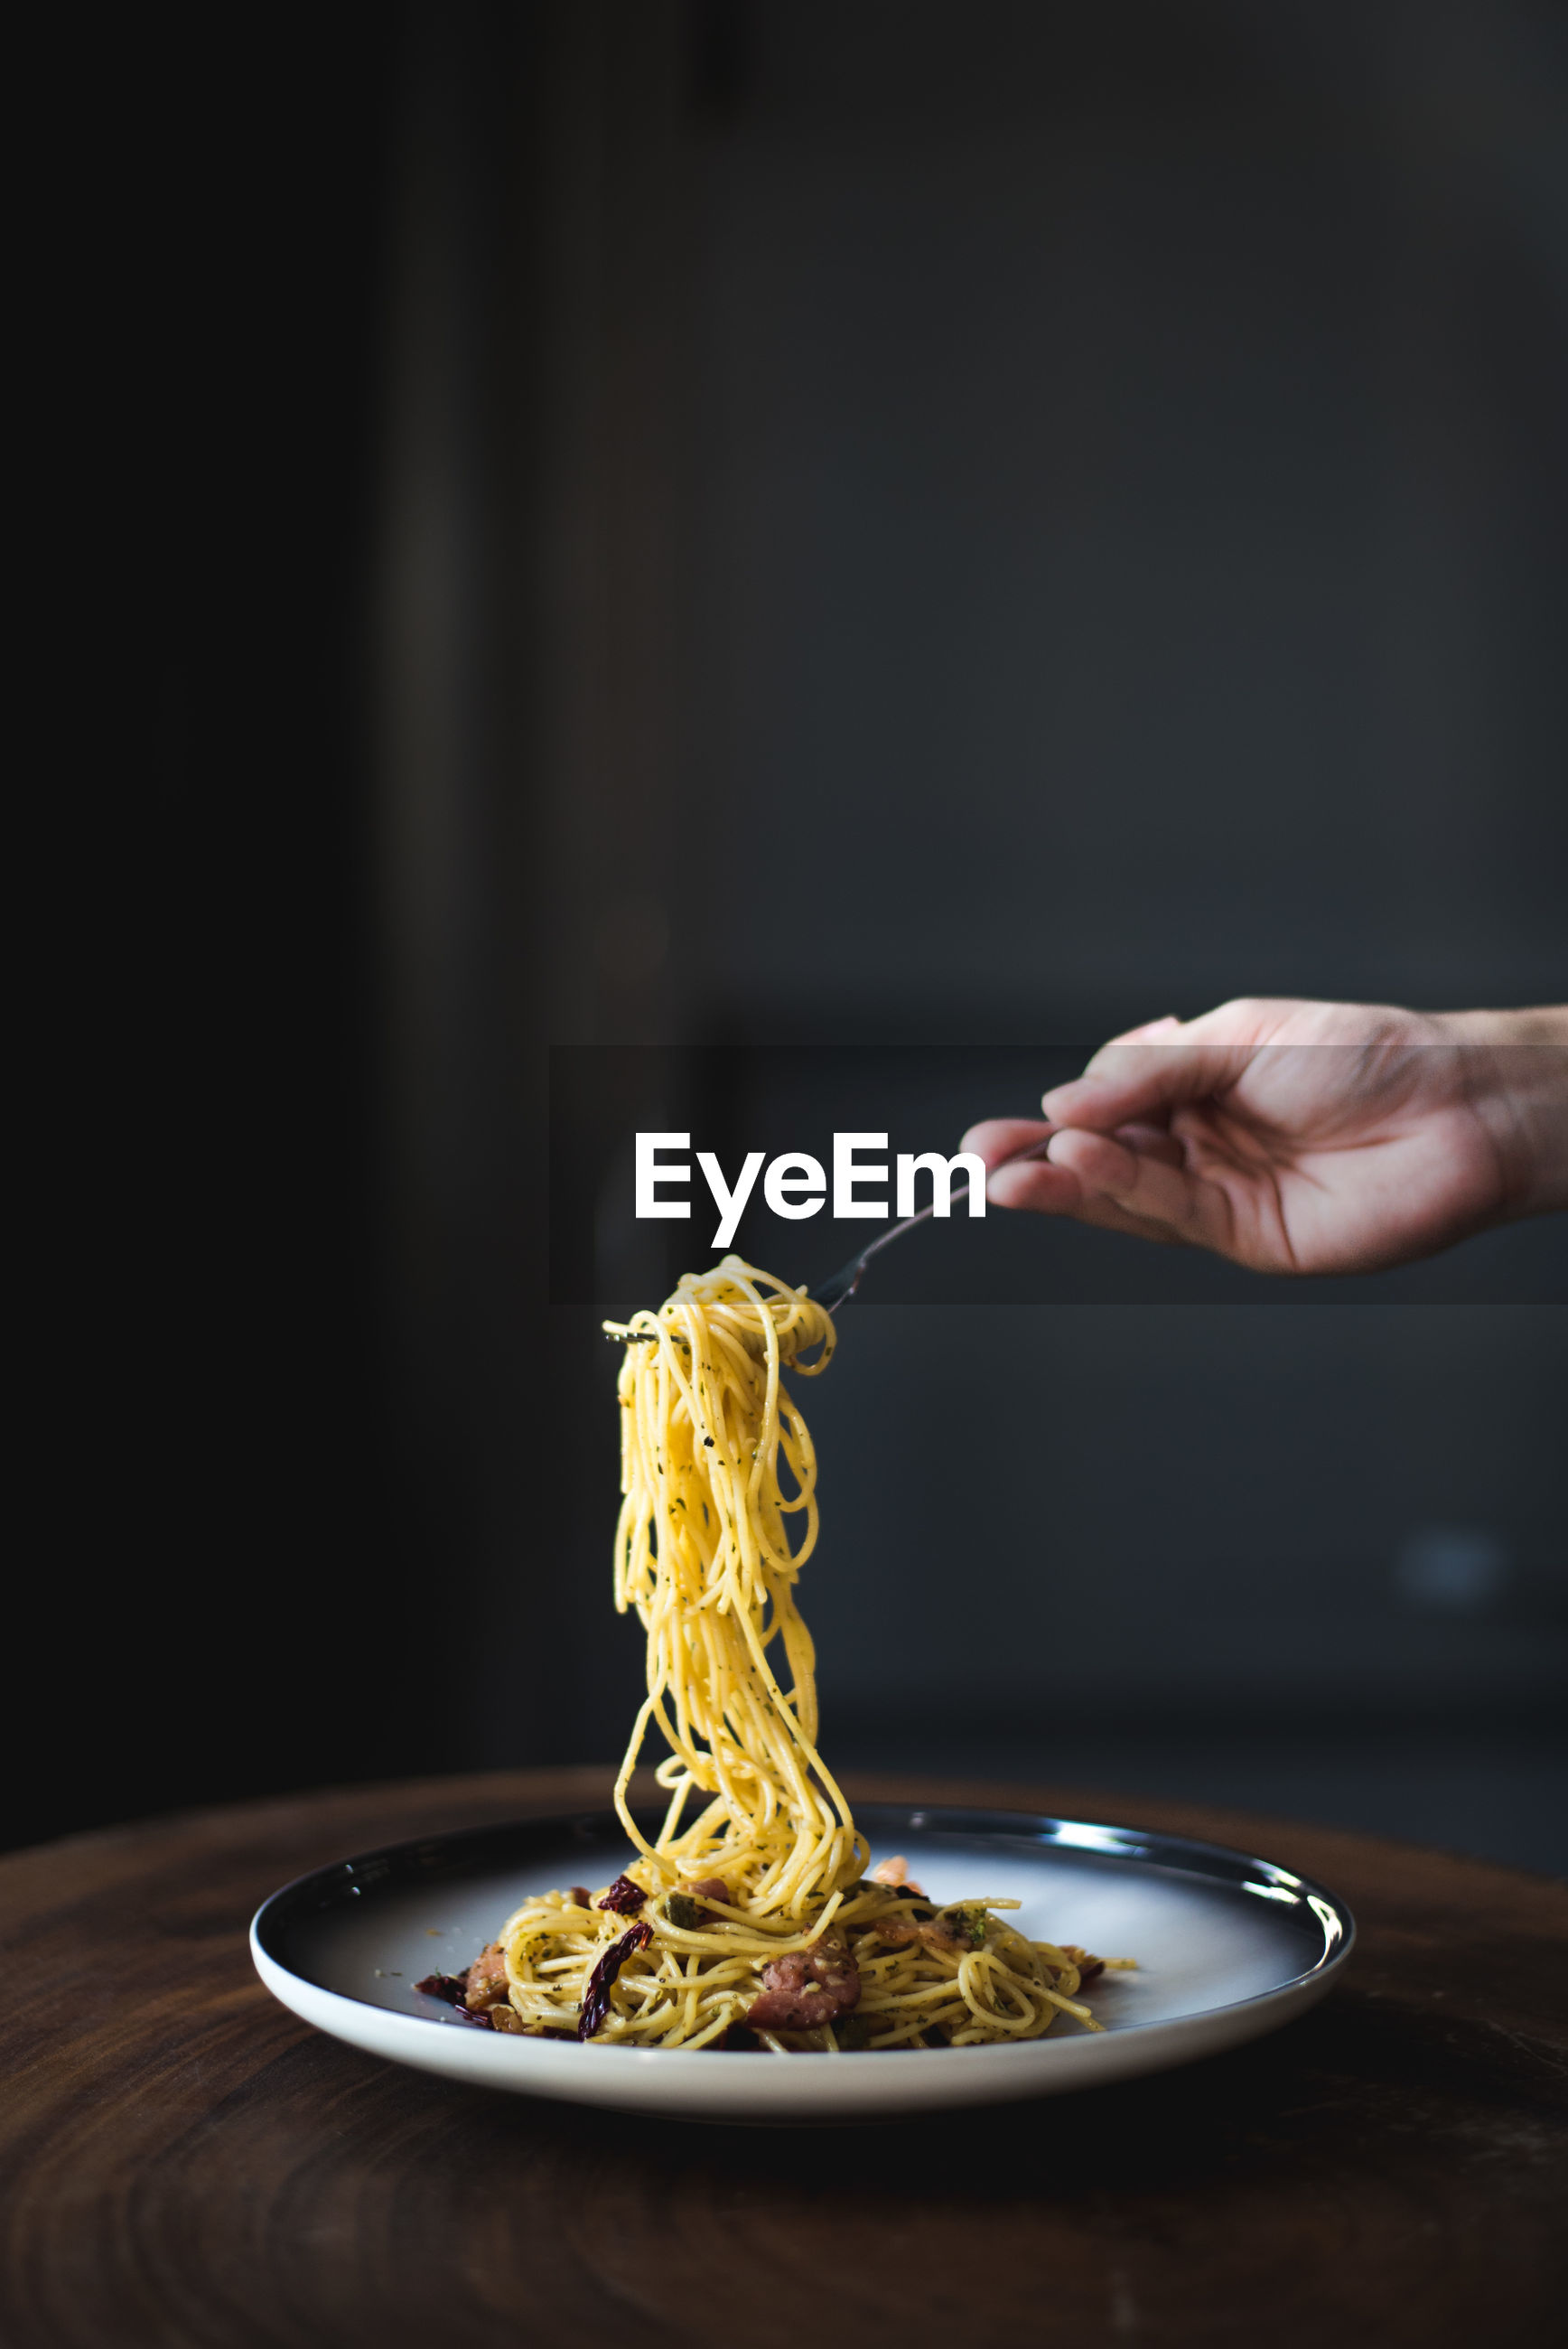 Noodles in fork held by person